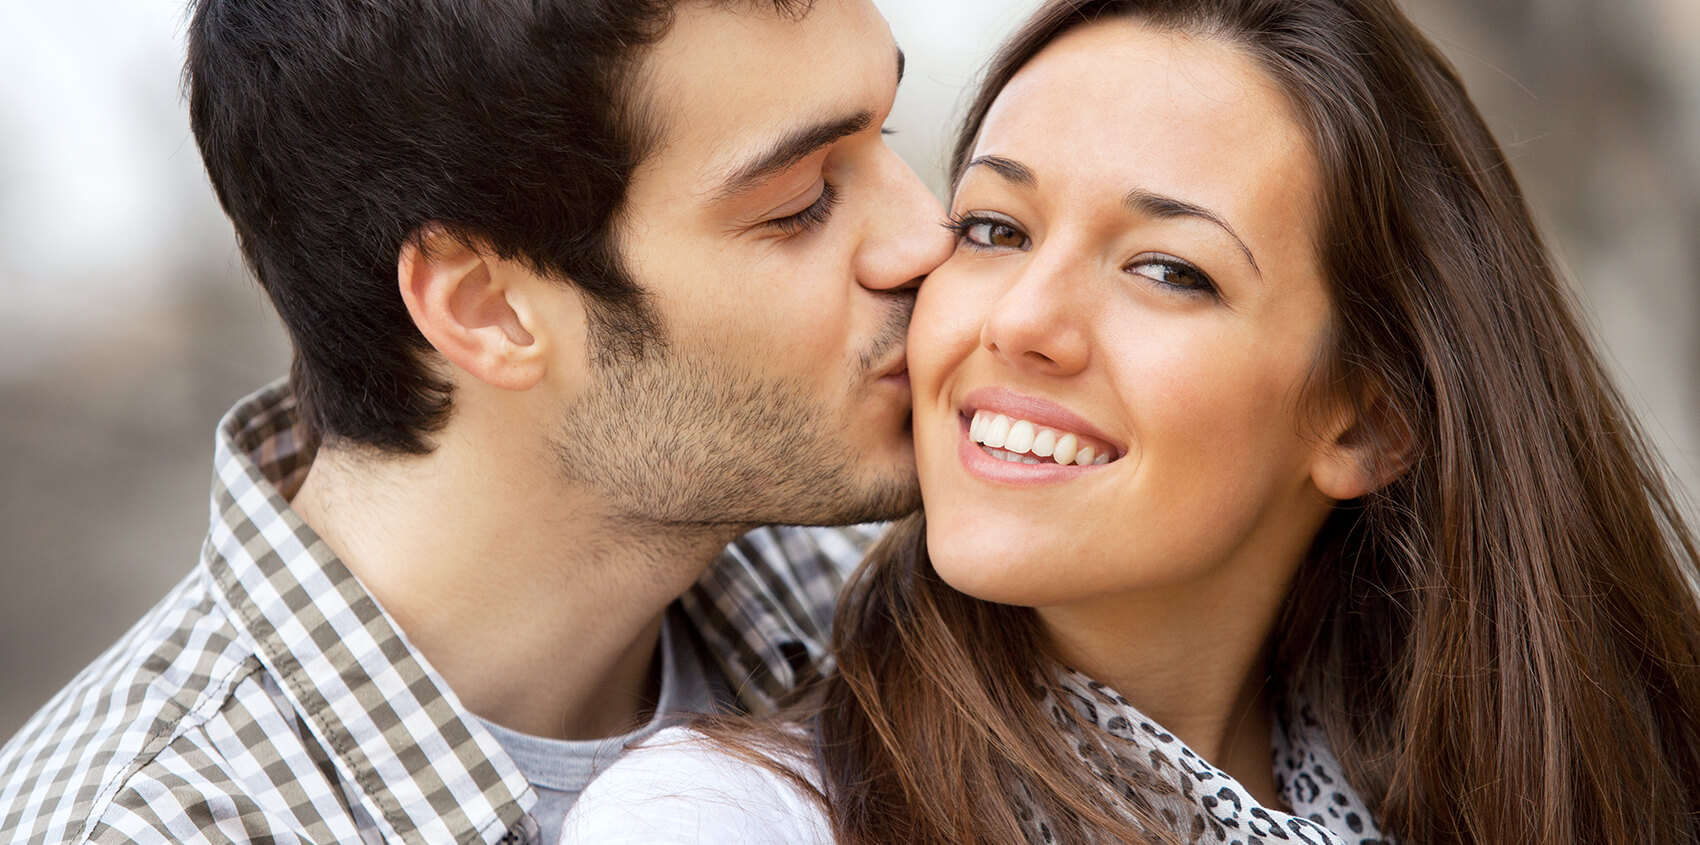 Upgrade your smile with a cosmetic dentist in Salt Lake City, UT